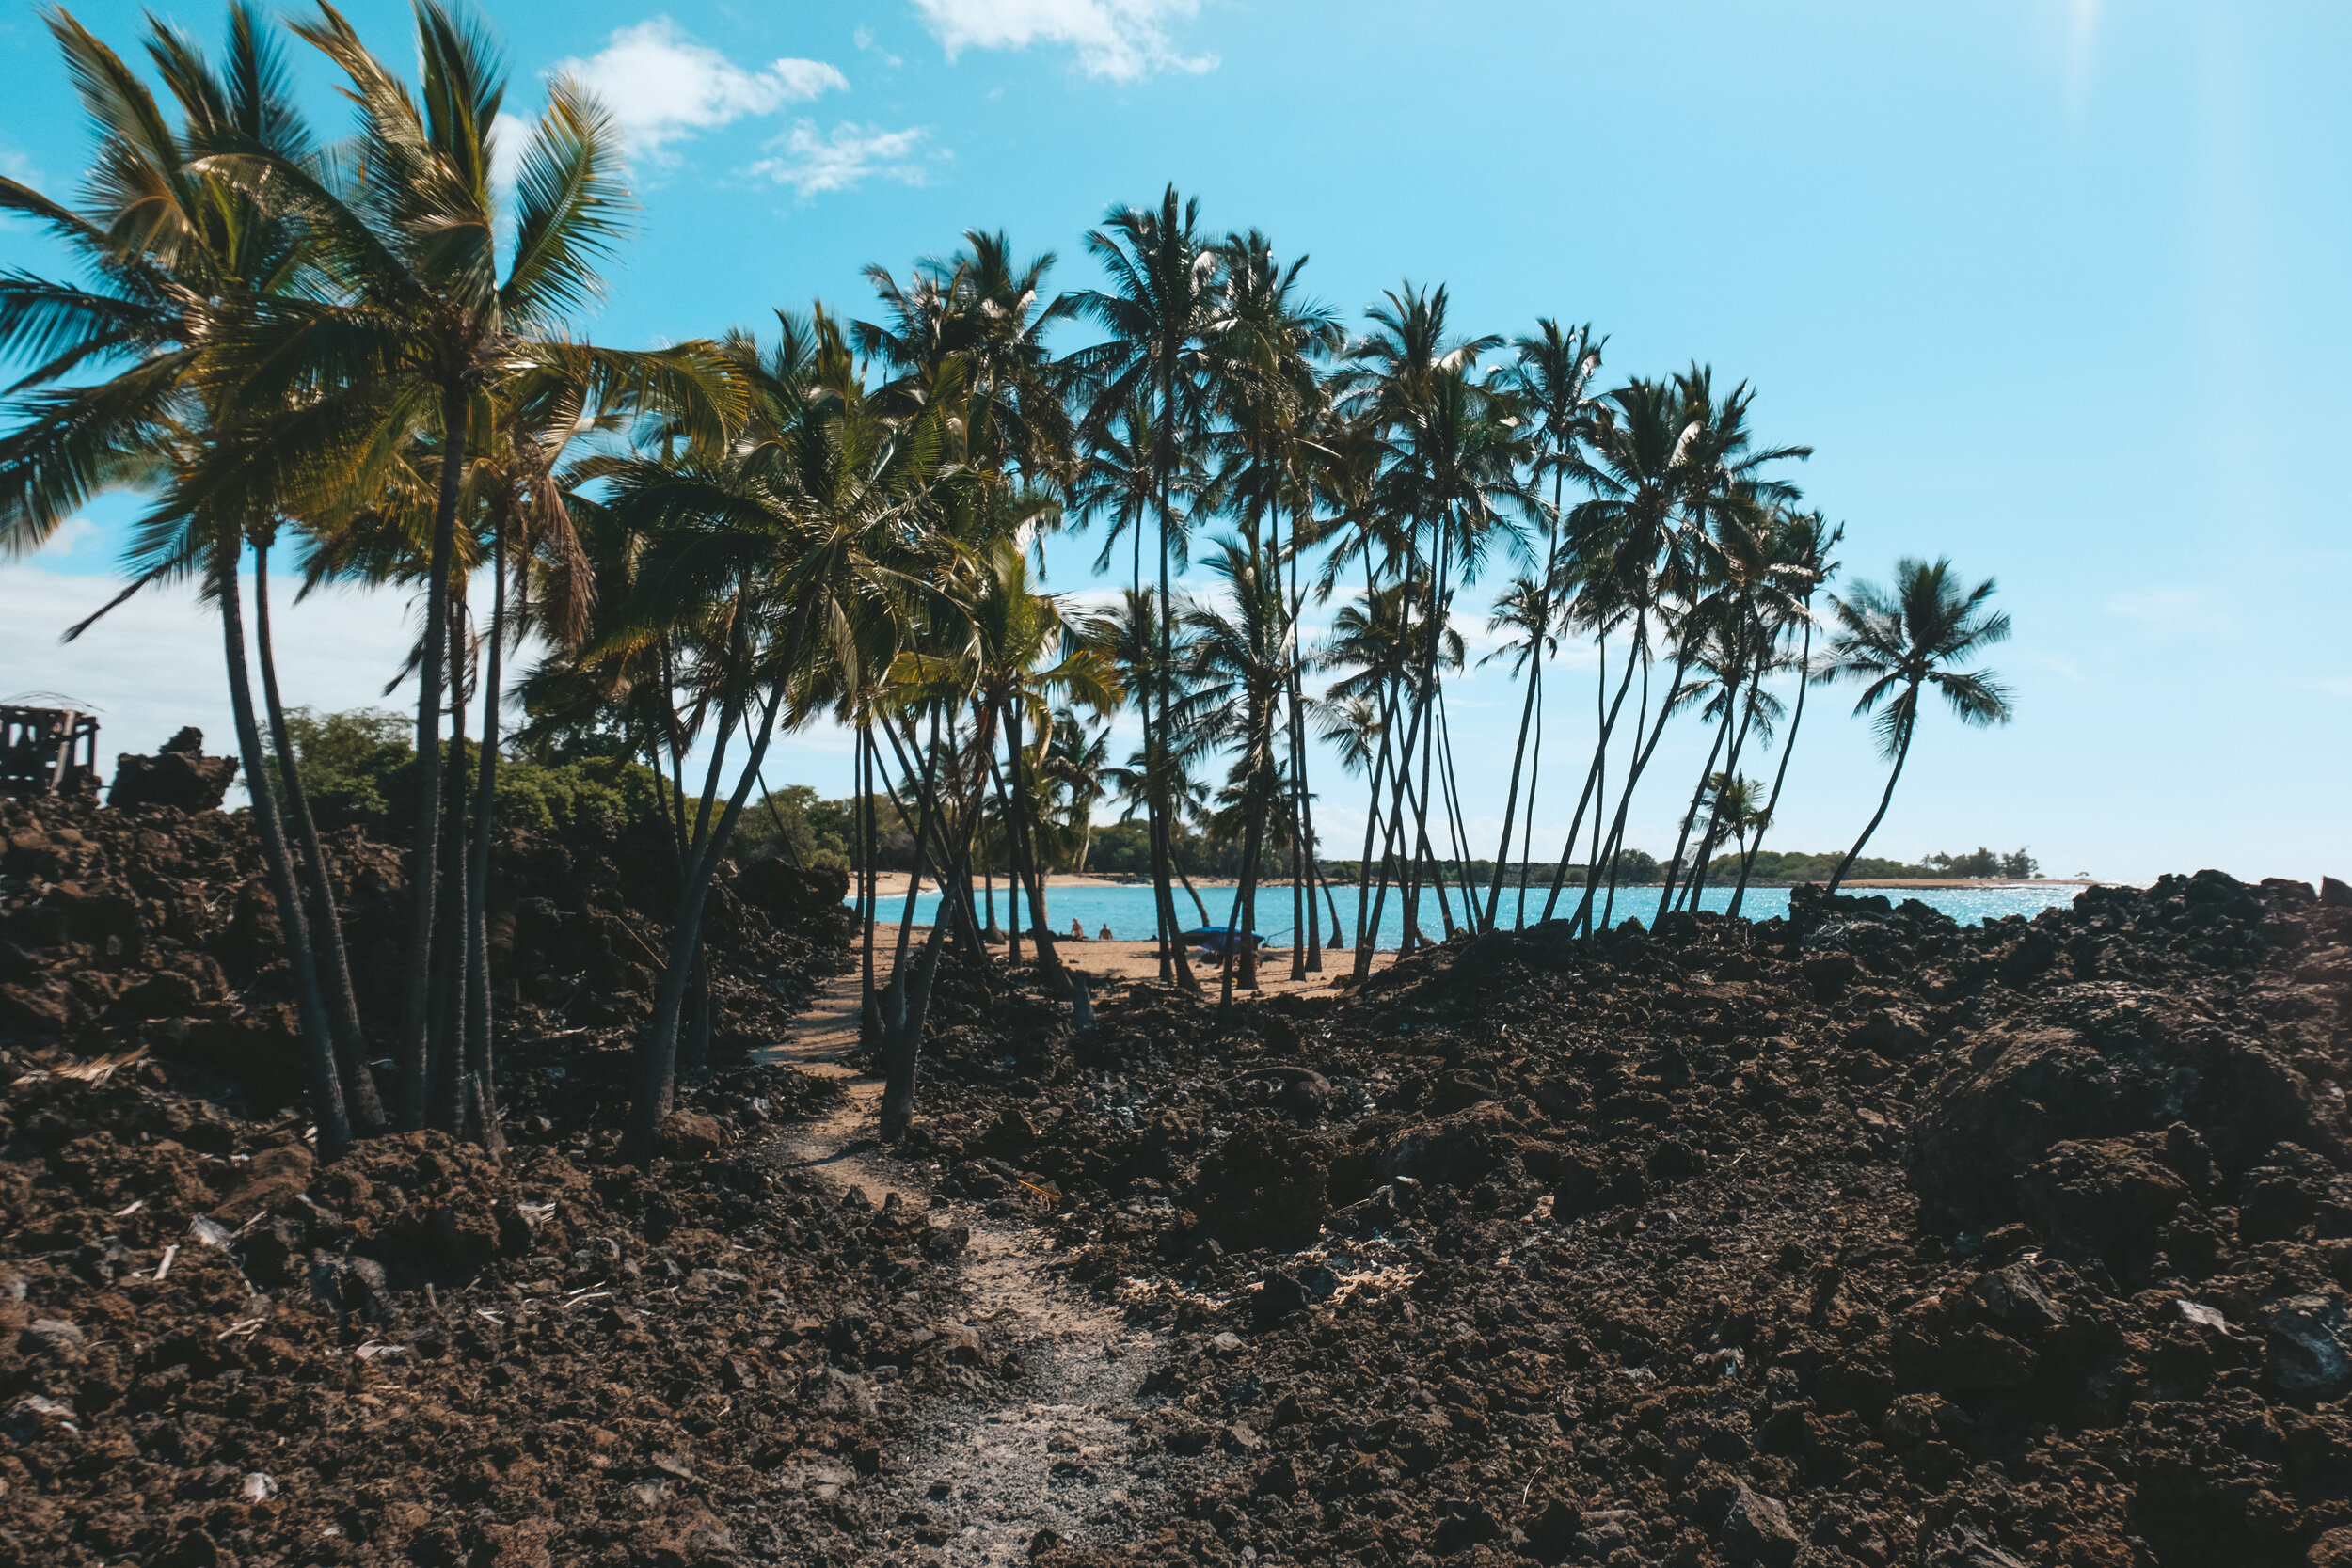 If you keep walking east (over the volcanic rock) and walk for about 20 minutes you'll also find another hidden beach equally as gorgeous.